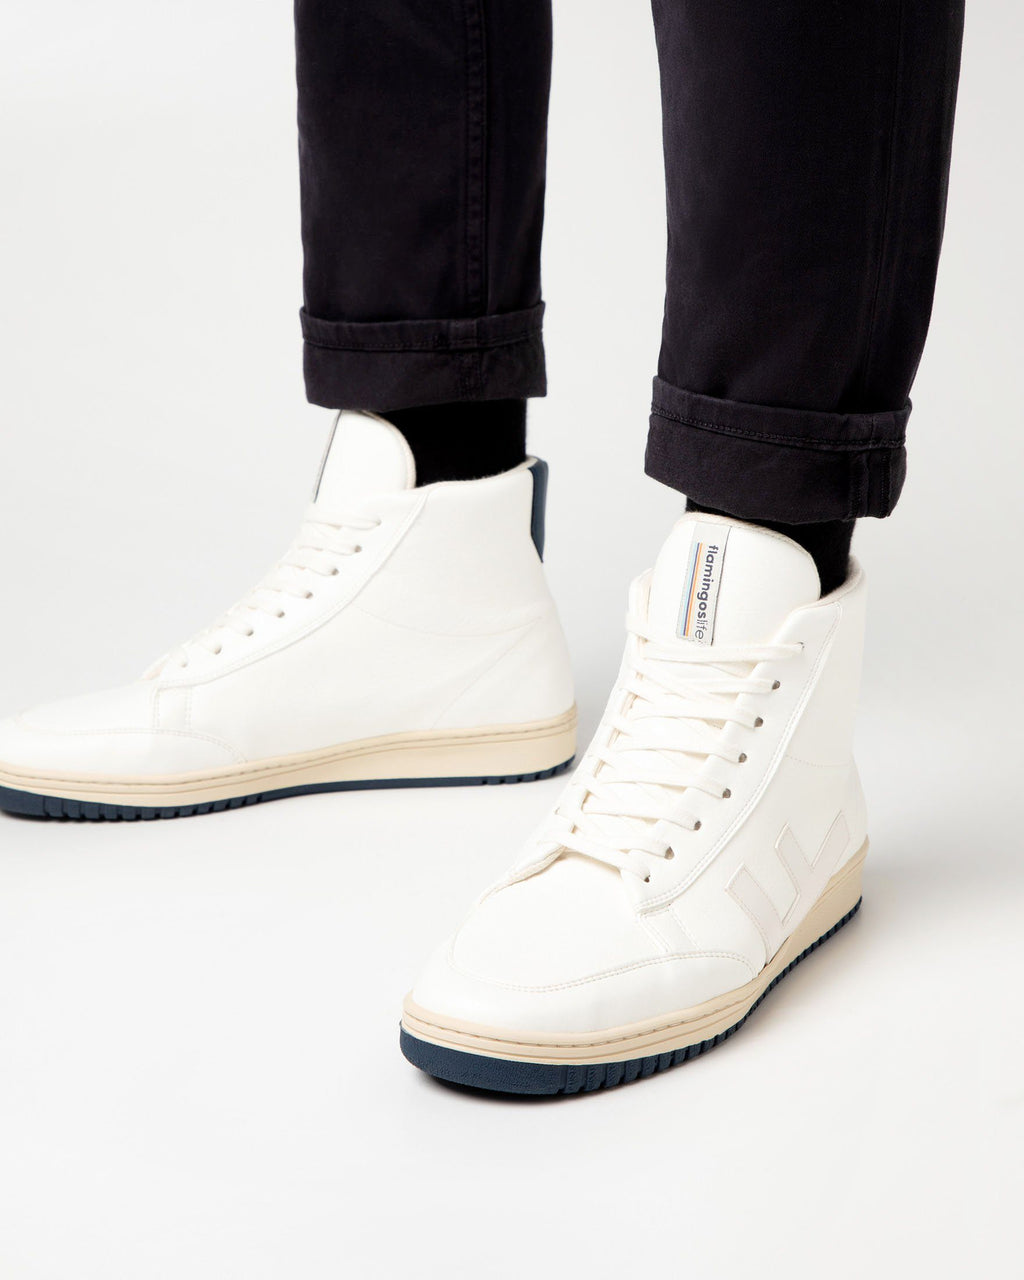 variant_1 | EN White Boots Shoes Men | DE Weiß Boots Herren Turnschuhe